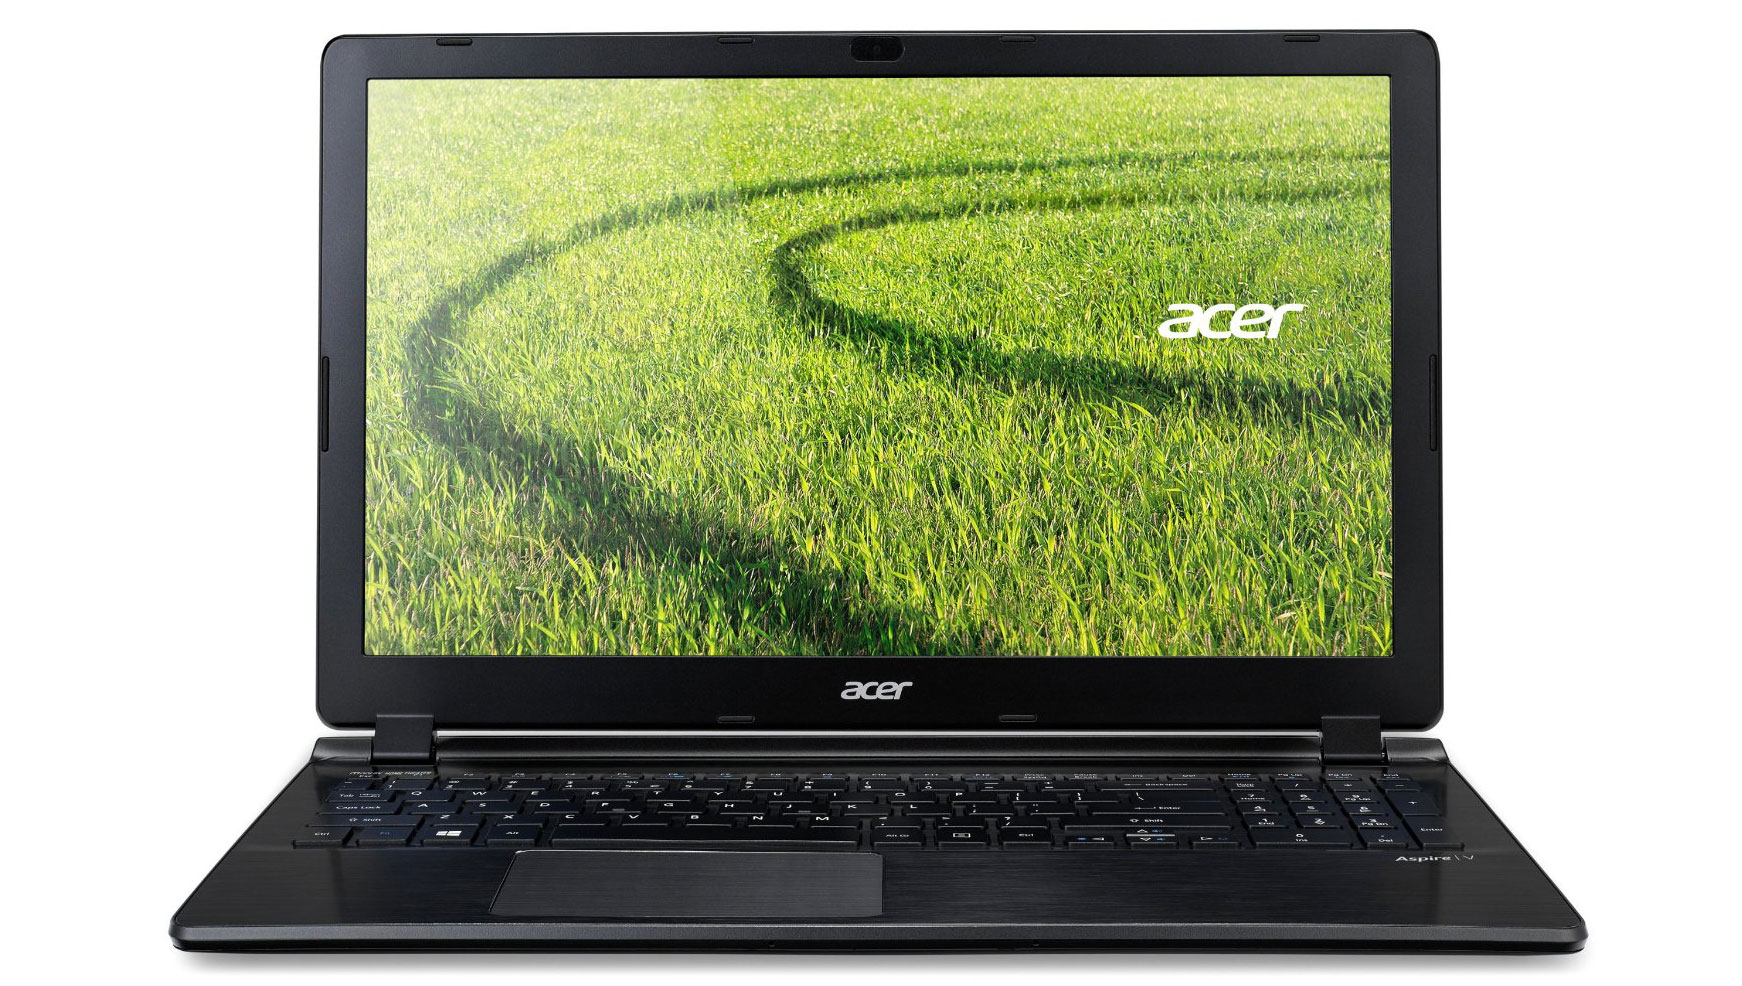 I need a good college/gaming laptop?